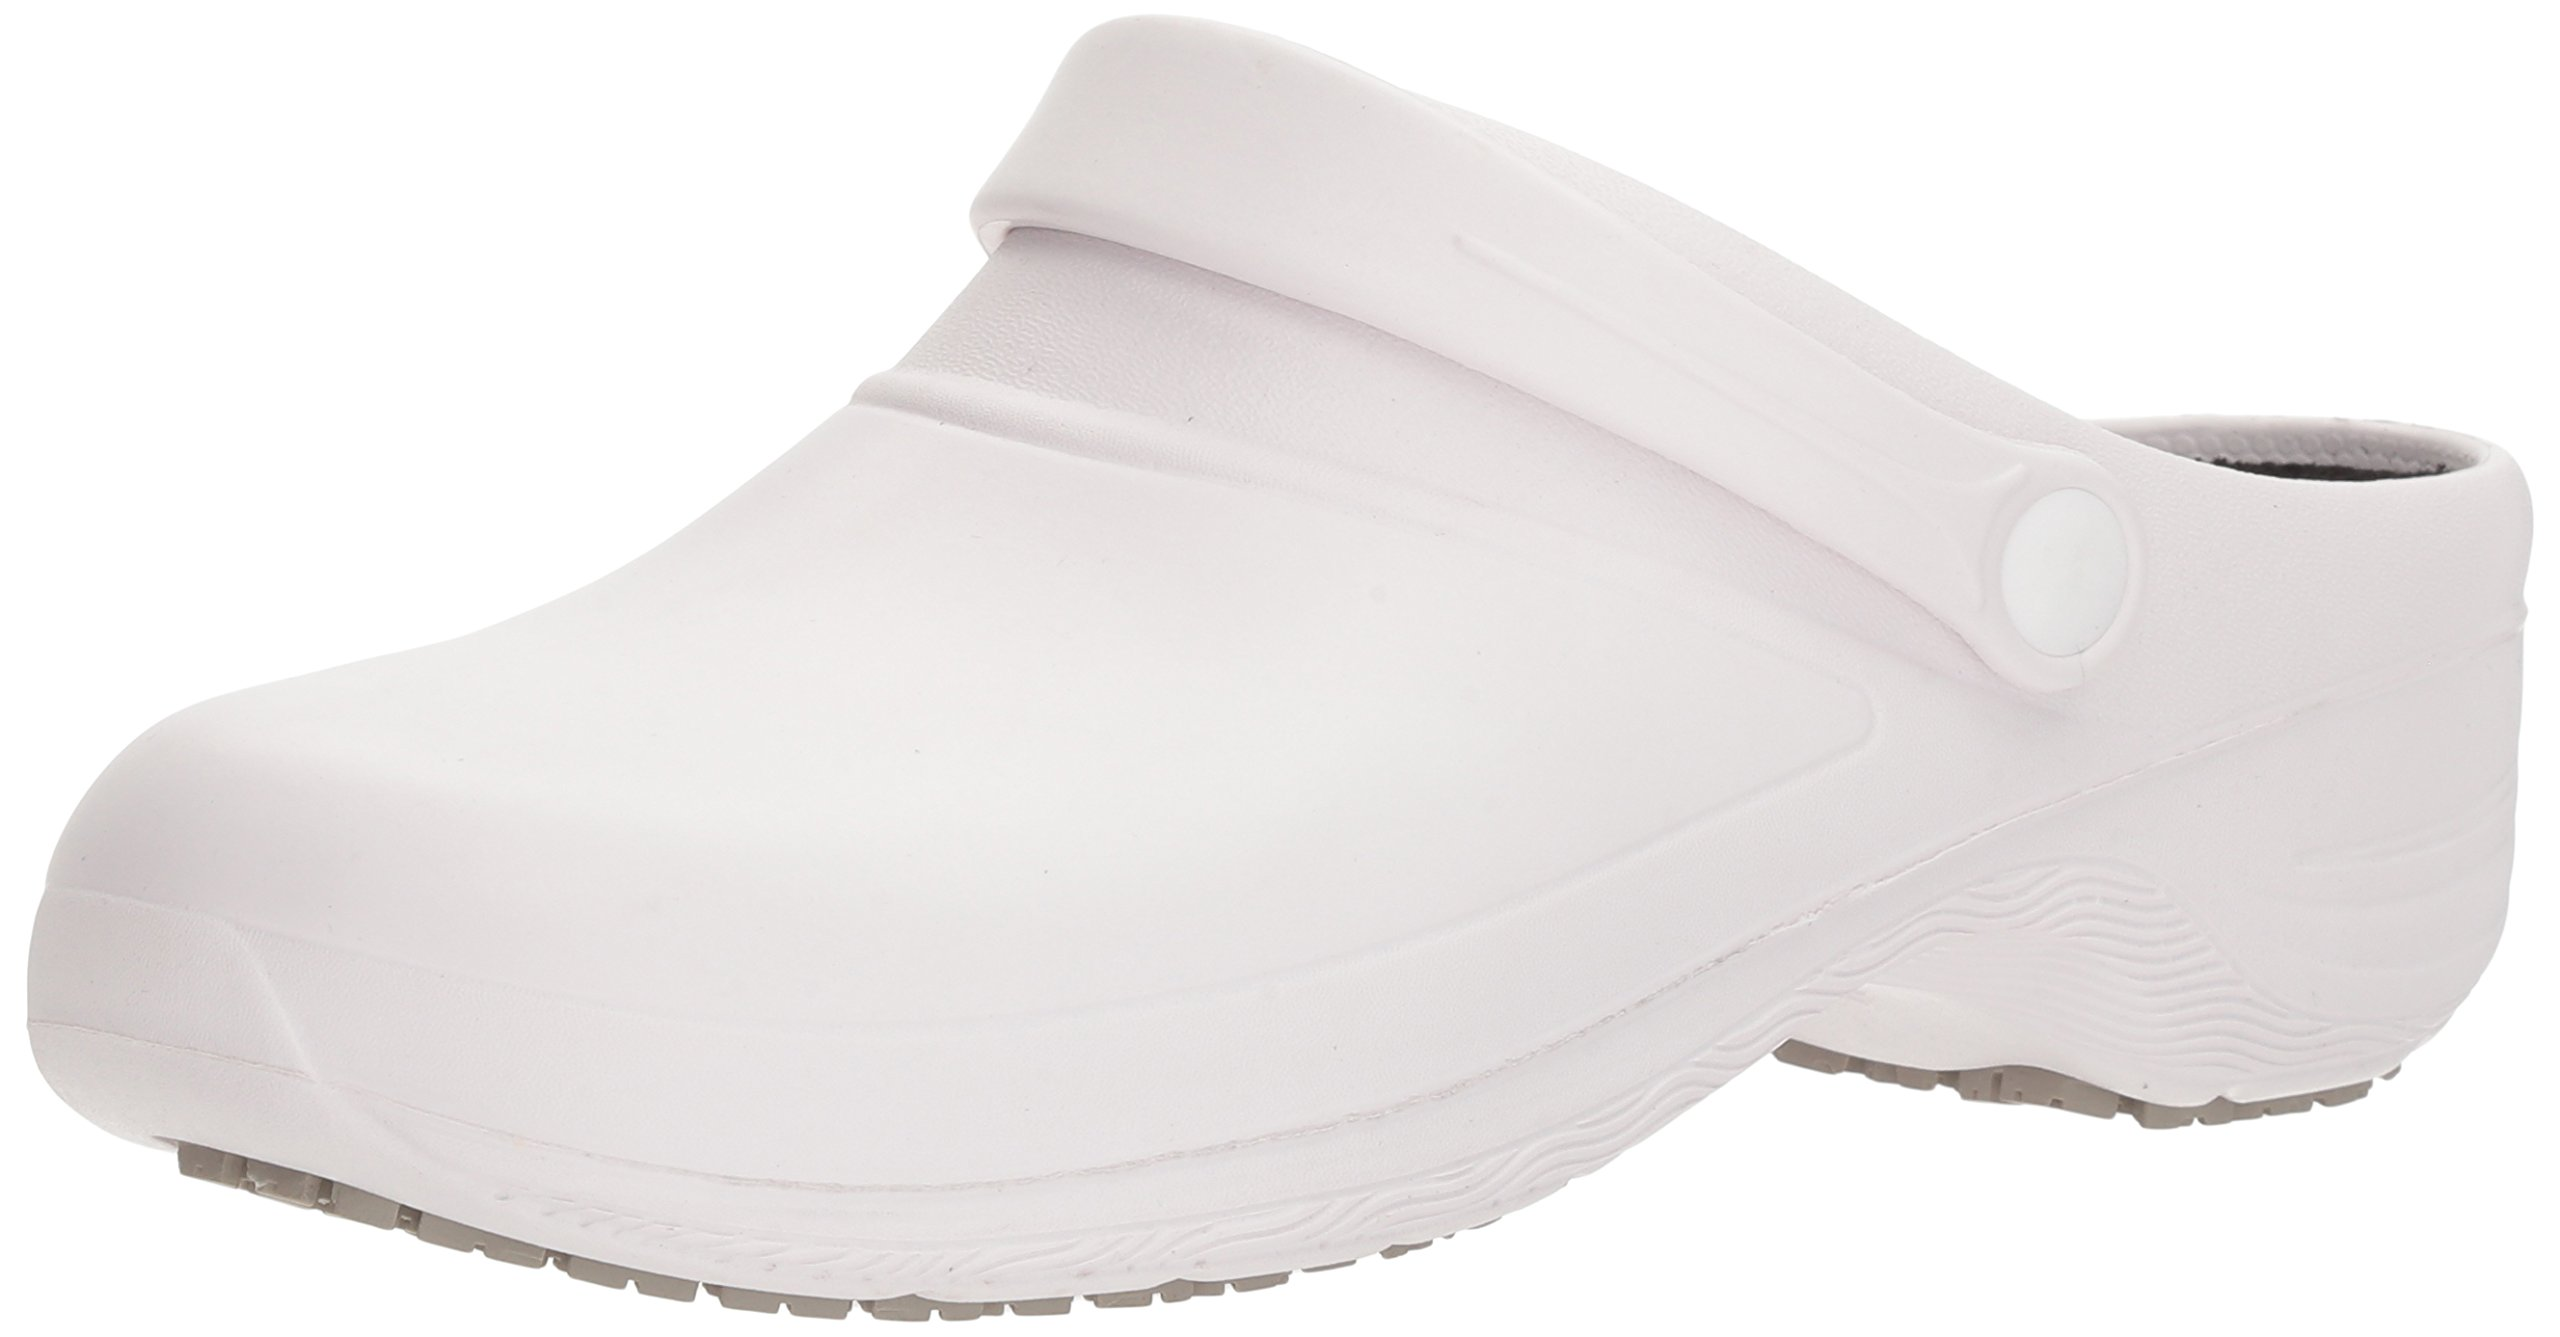 Easy Works Women's Time Health Care Professional Shoe, White, 10 M US